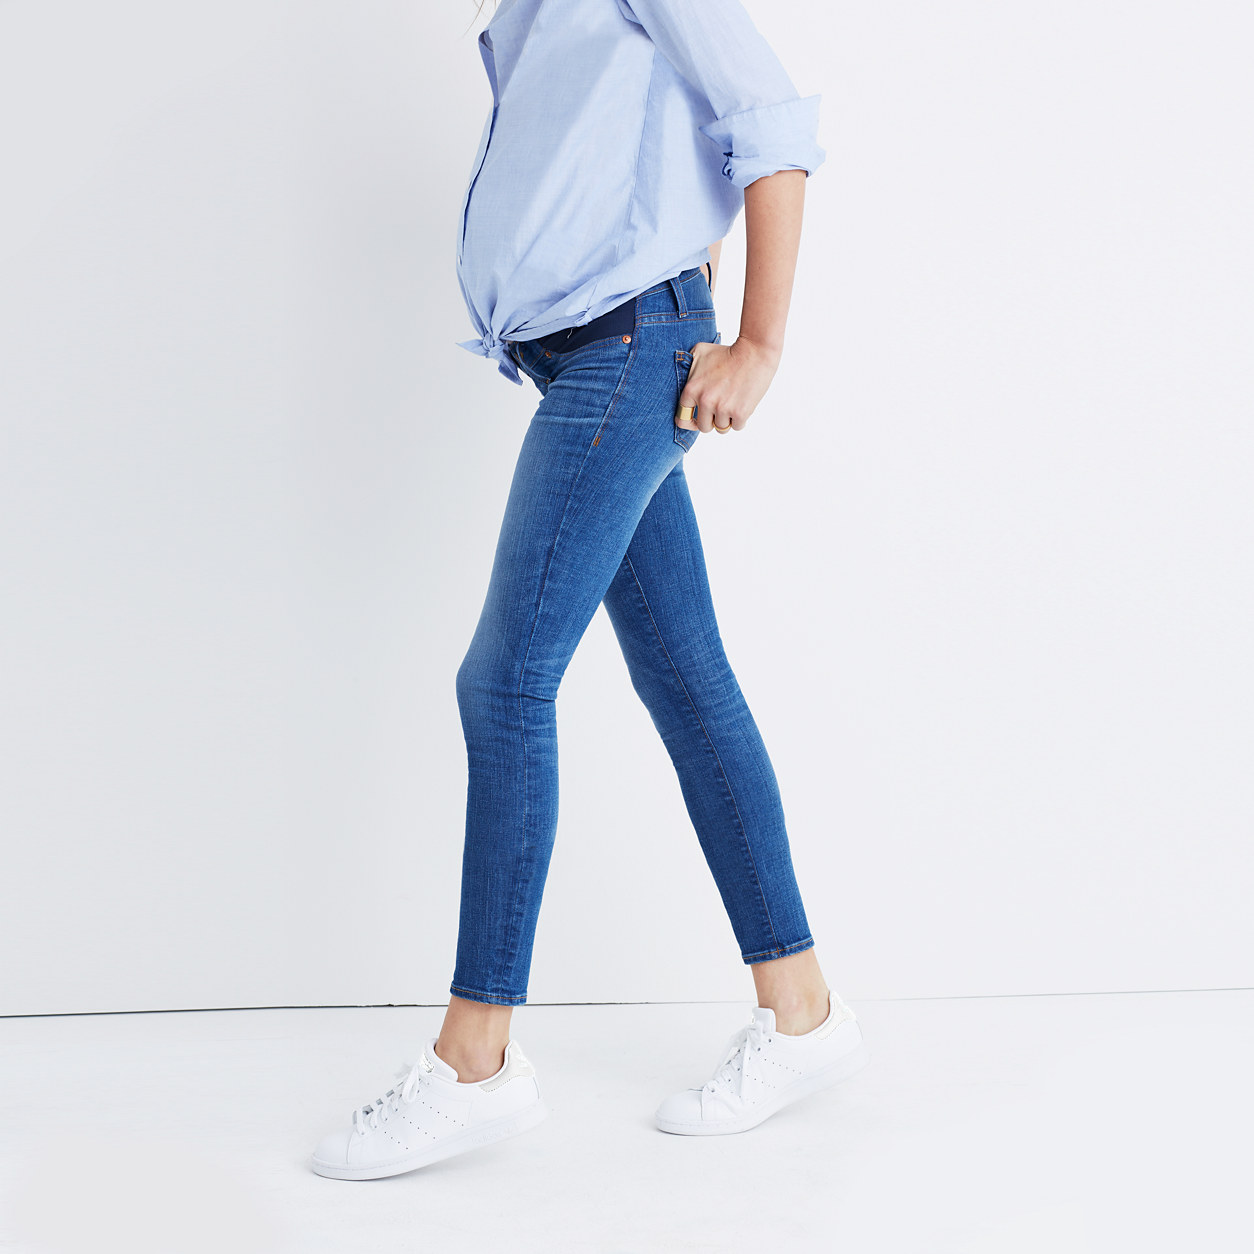 Maternity Skinny Jeans in Juliet Wash : maternity jeans | Madewell